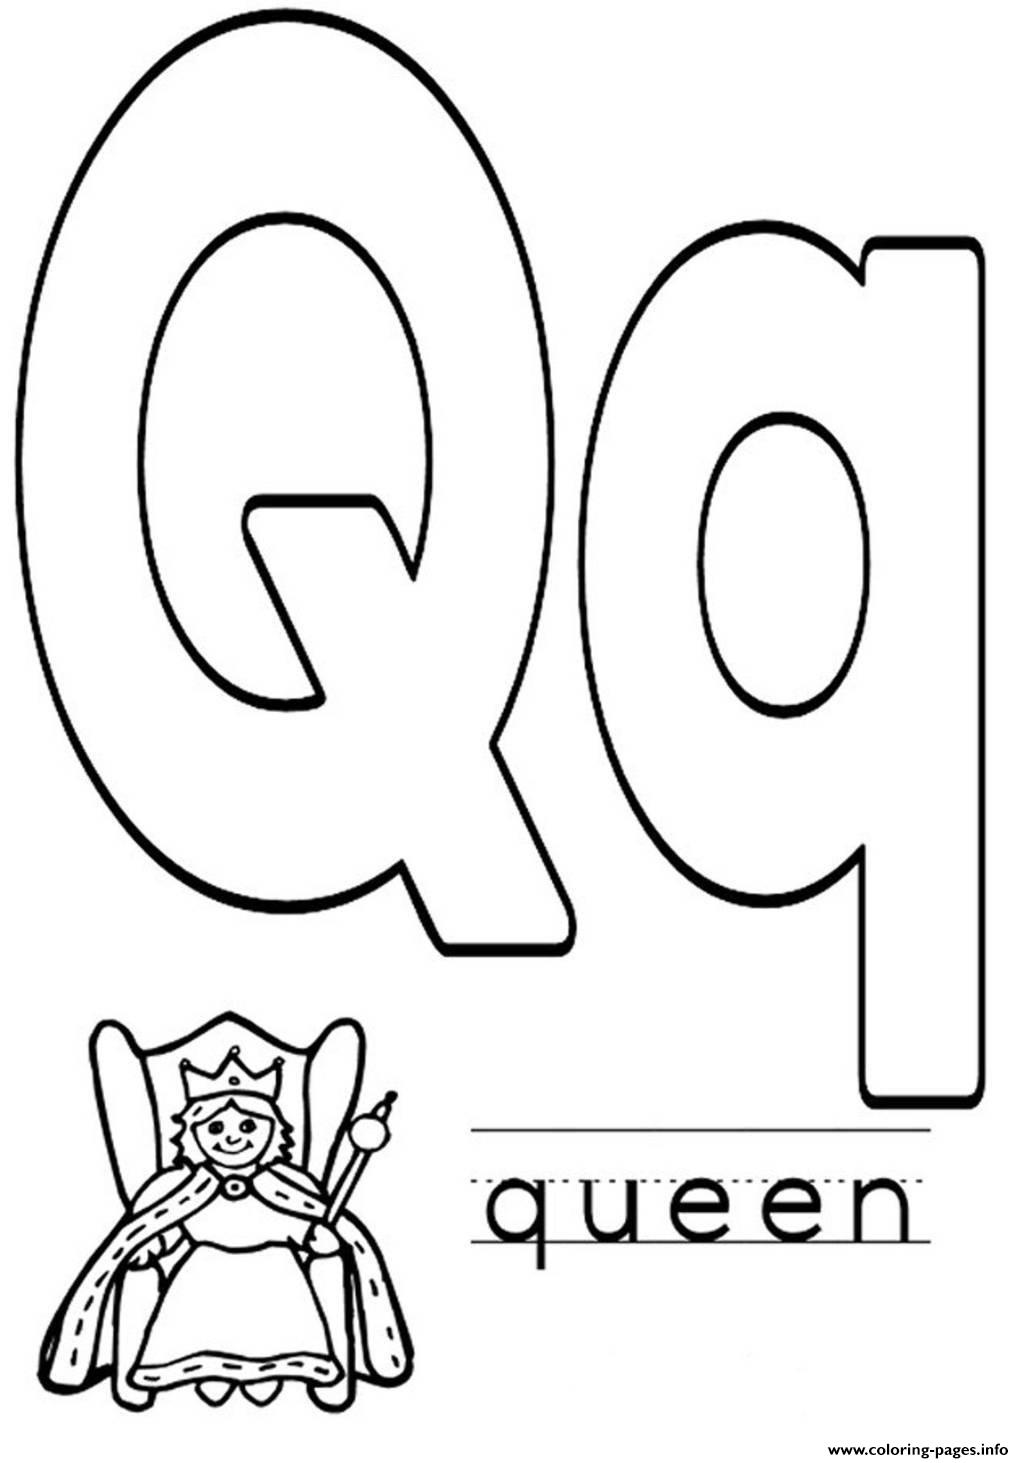 Q For Queen Coloring Pages for Kids to Color and Print